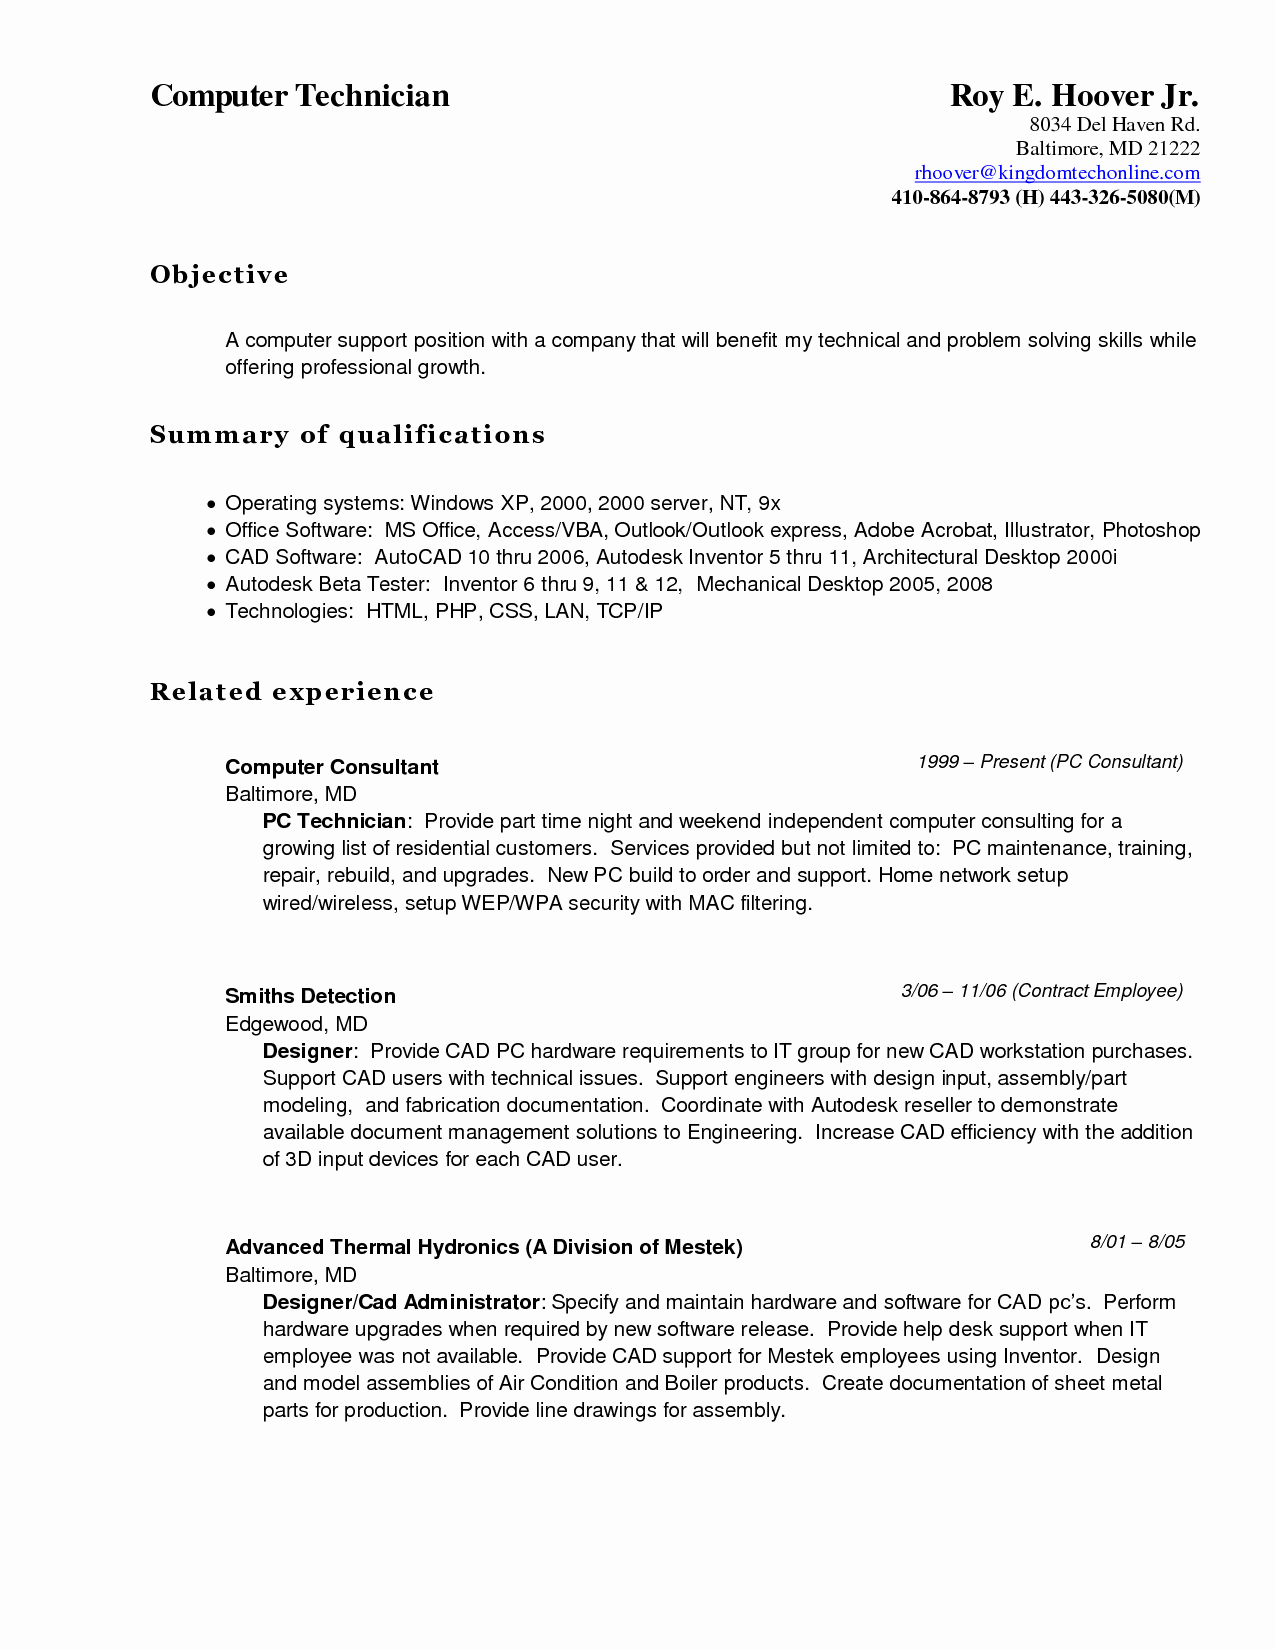 Best Resume Writing Services India Annecarolynbird